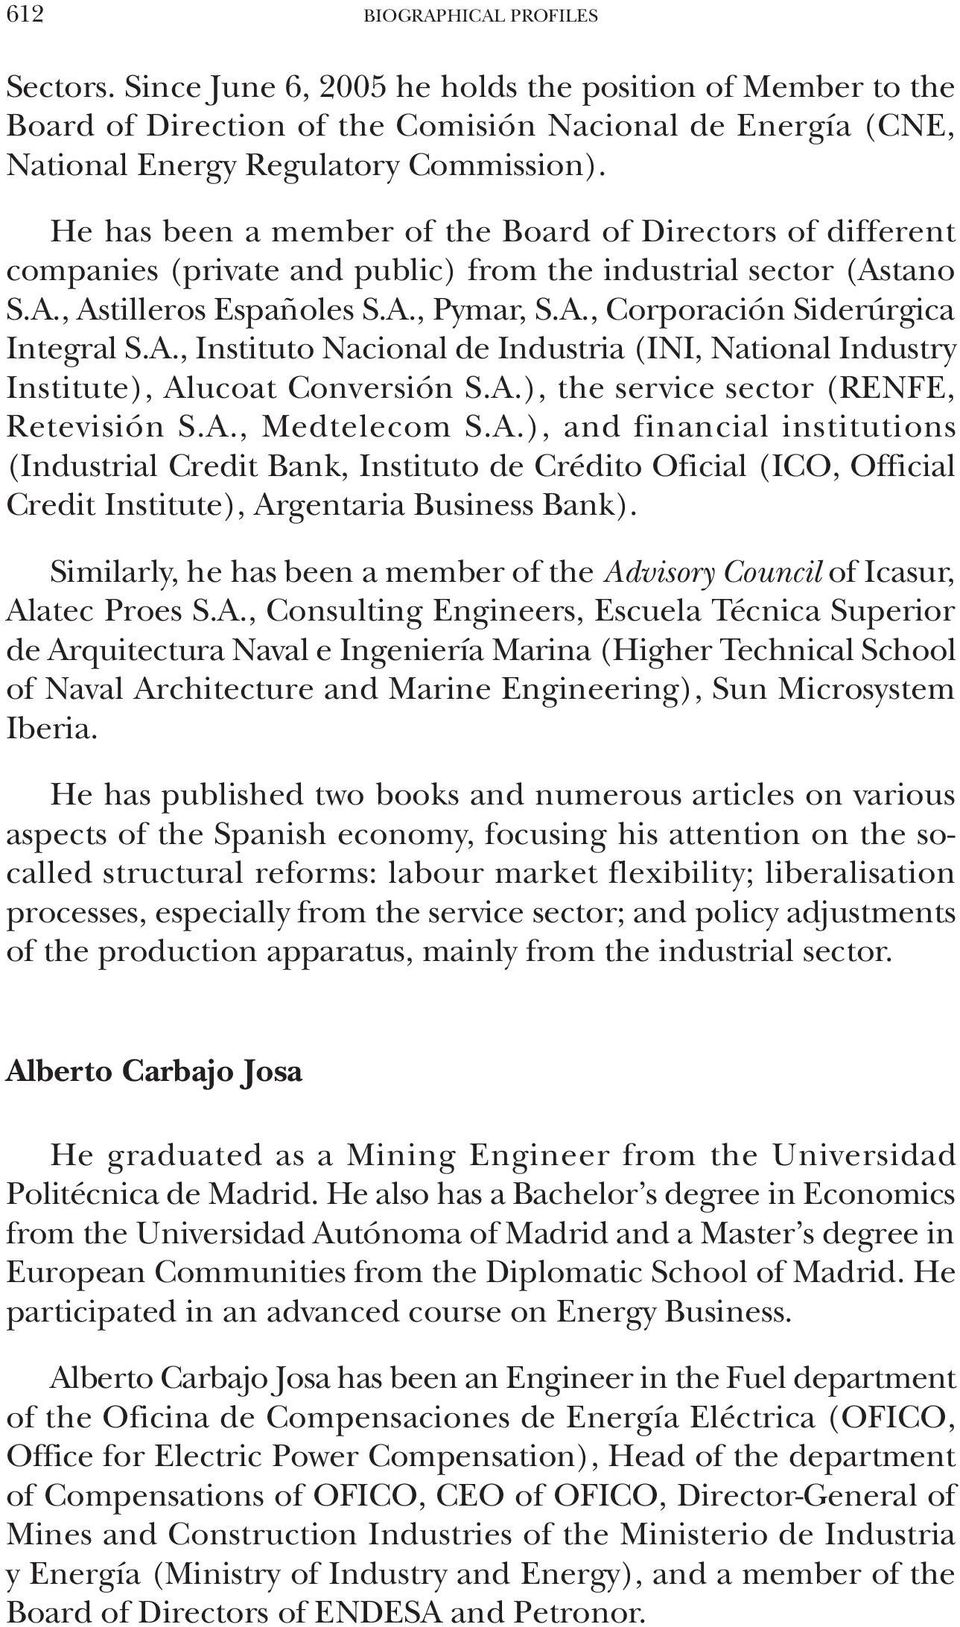 A., Instituto Nacional de Industria (INI, National Industry Institute), Alucoat Conversión S.A.), the service sector (Renfe, Retevisión S.A., Medtelecom S.A.), and financial institutions (Industrial Credit Bank, Instituto de Crédito Oficial (ICO, Official Credit Institute), Argentaria Business Bank).